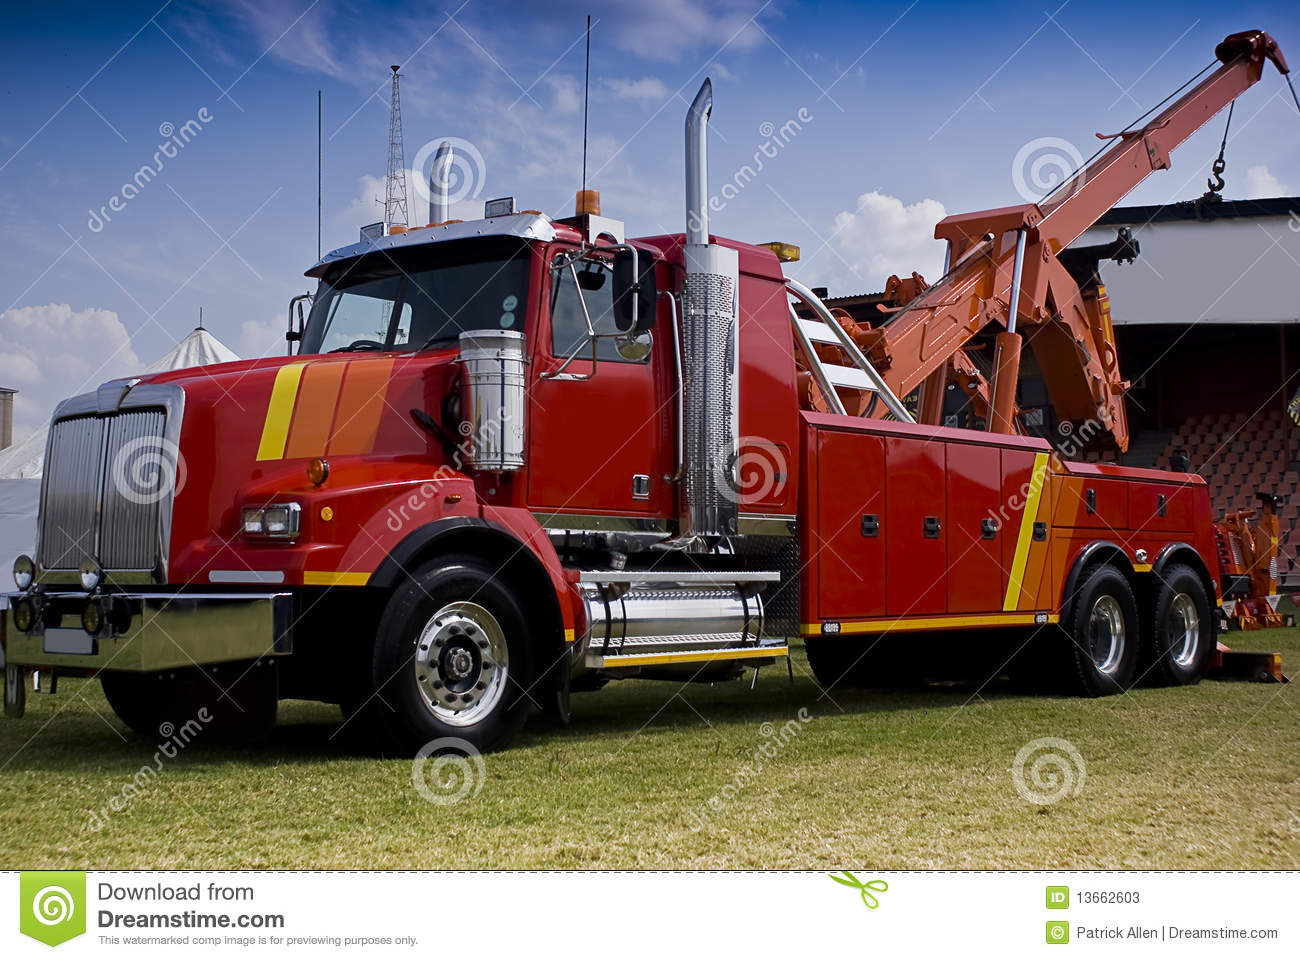 Towing and Recovery Vehicle